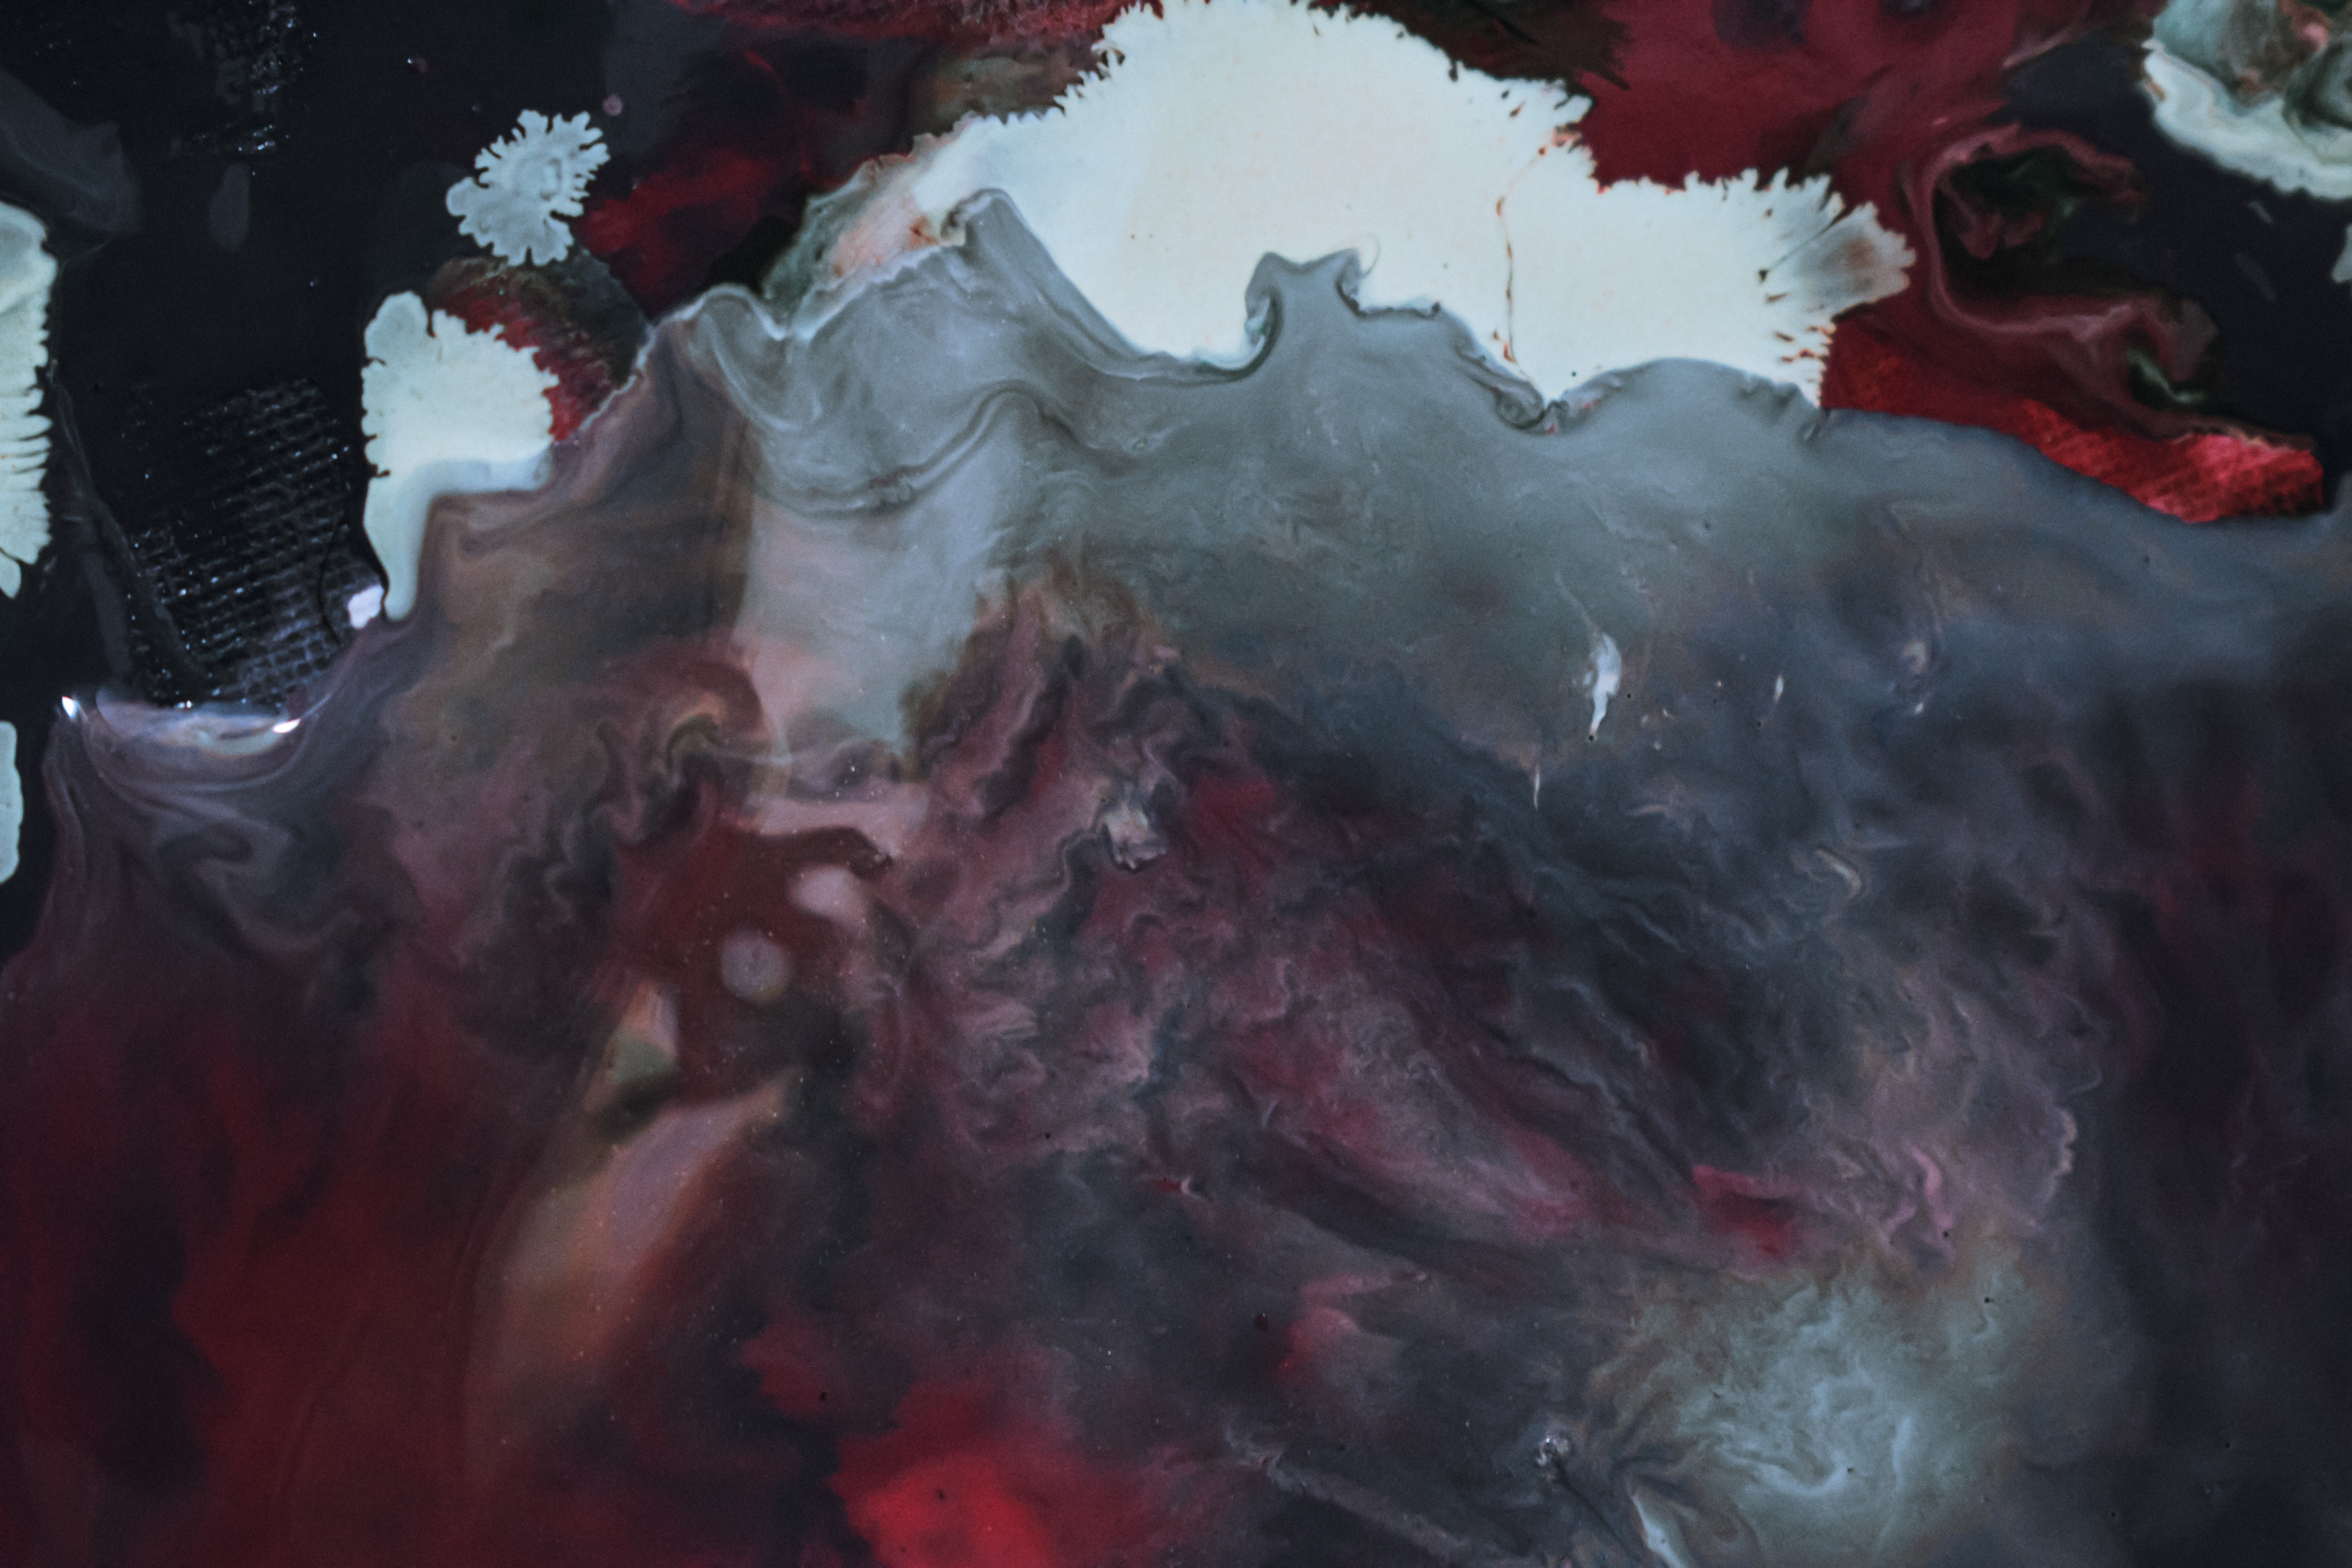 abstract backdrop of painting with wavy fluid